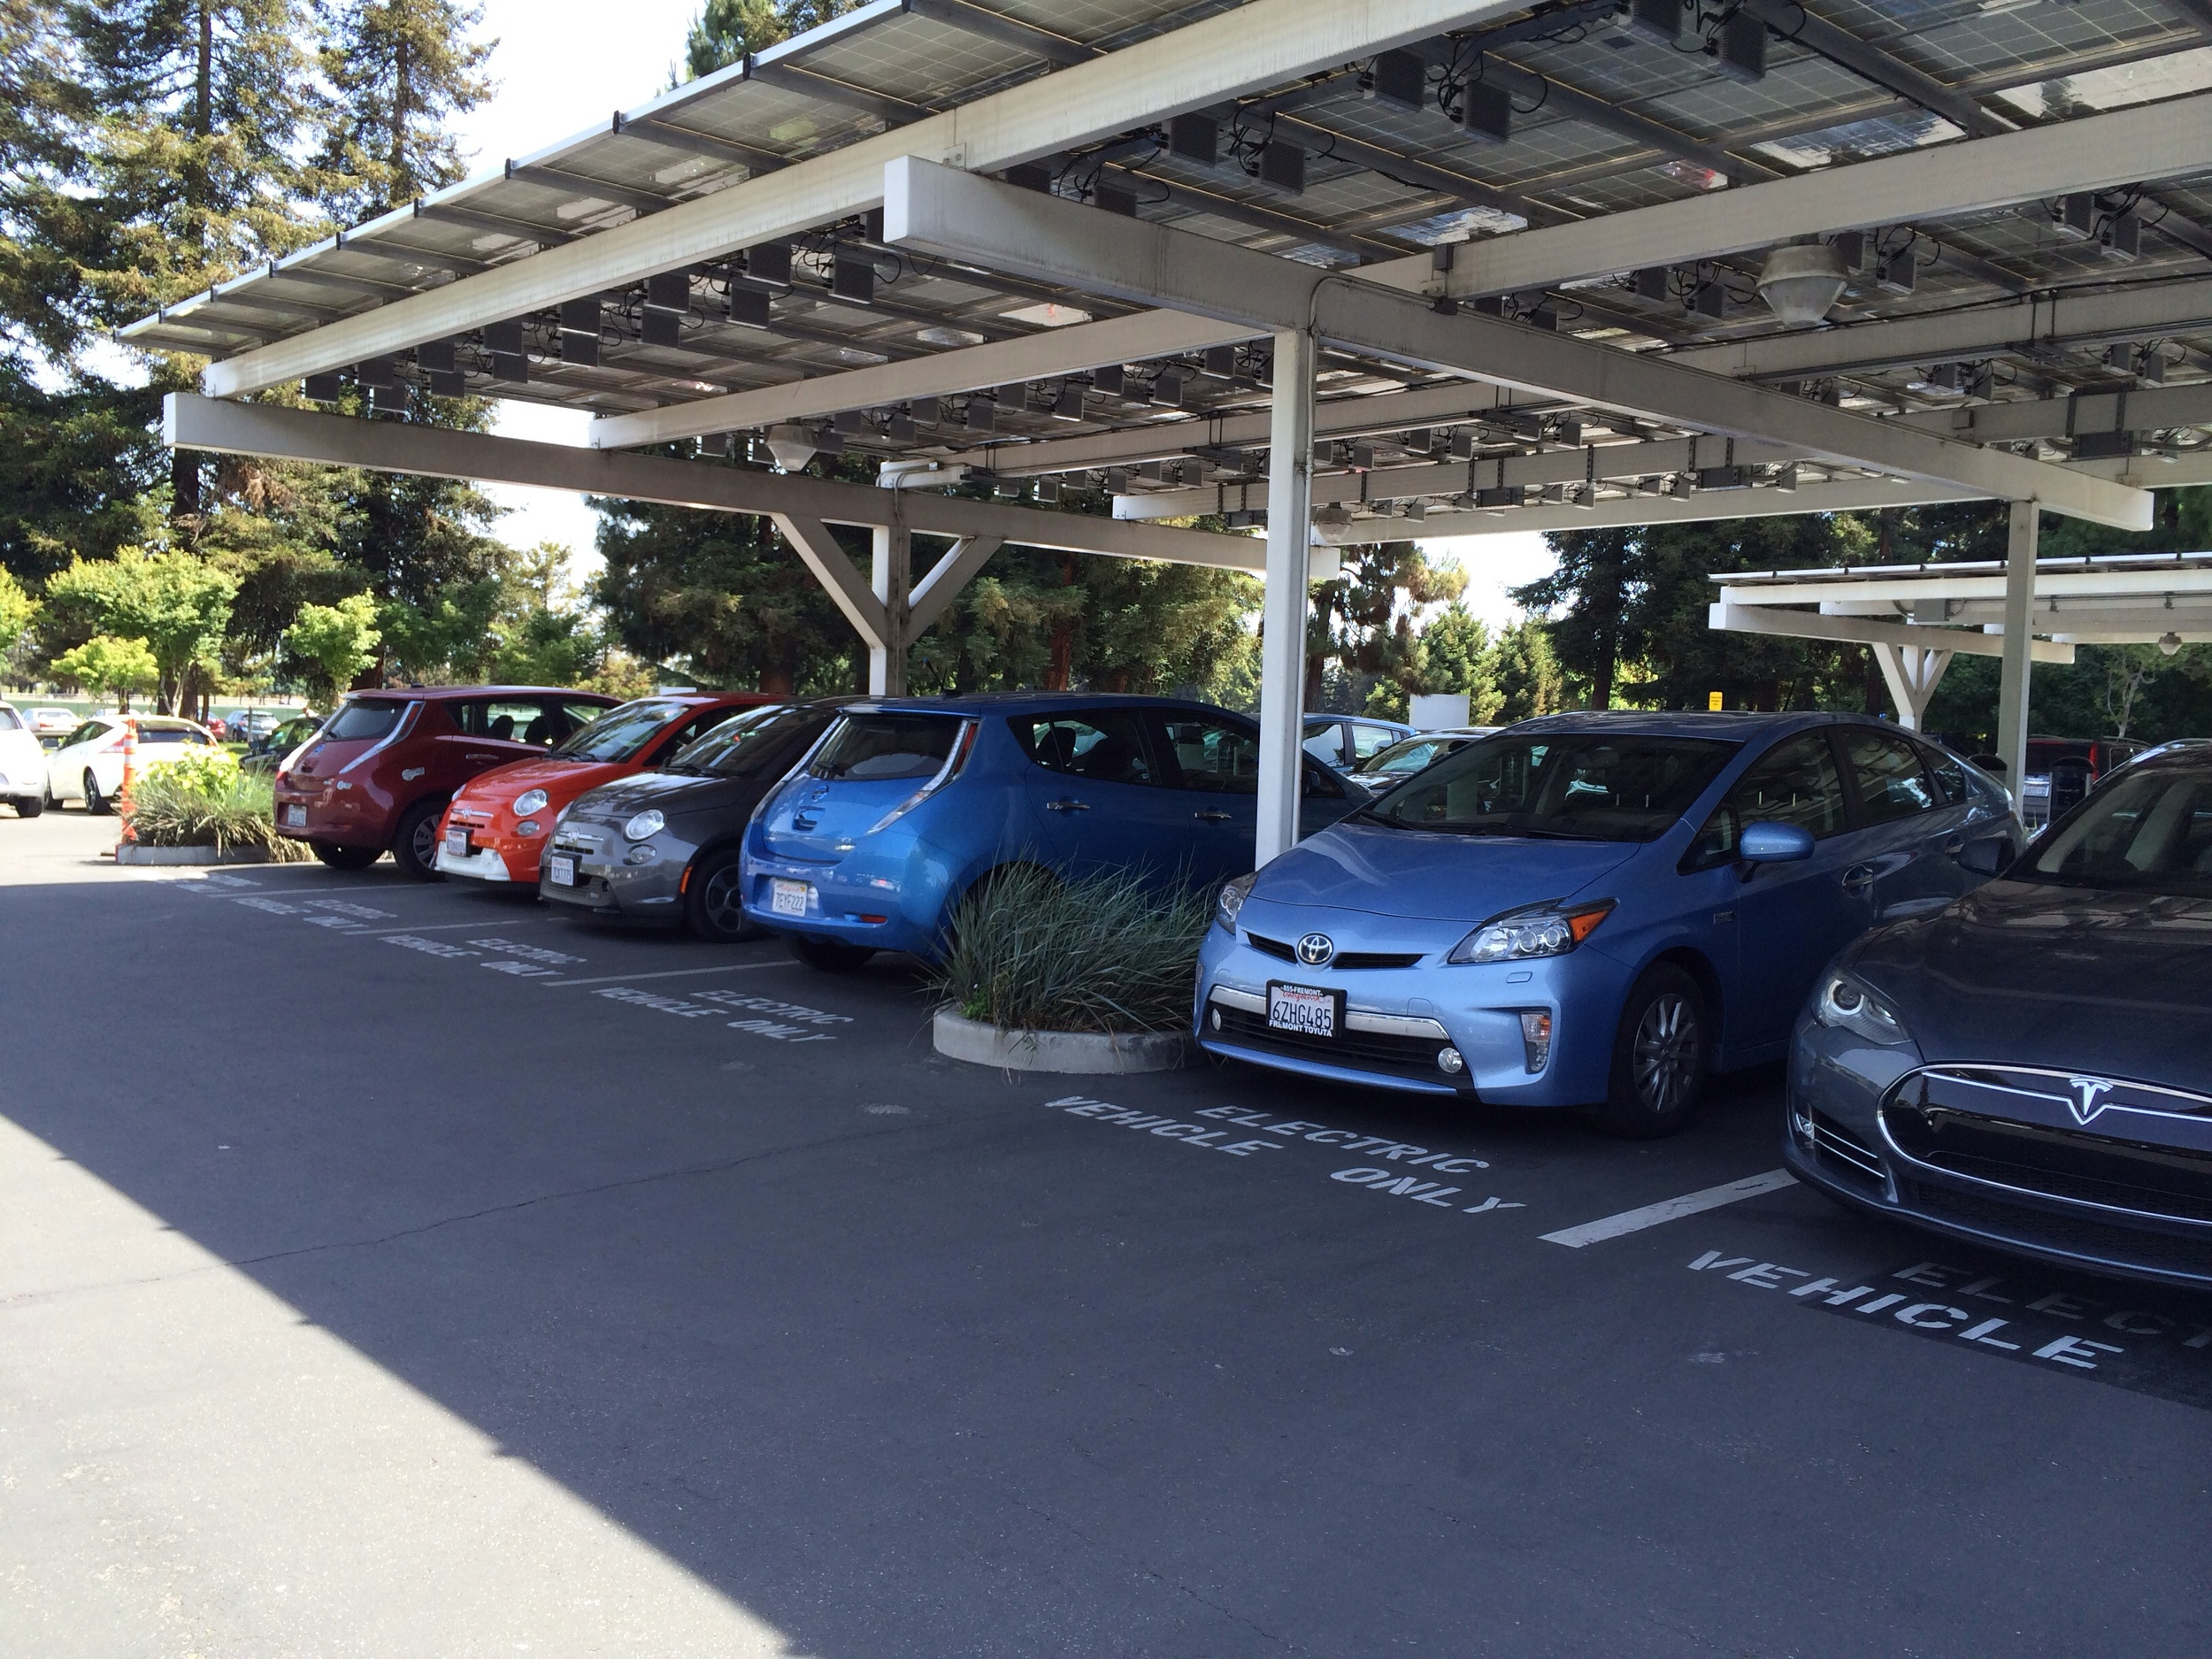 FrankE the Fiat 500e, happily charging in the solar shade at Google.